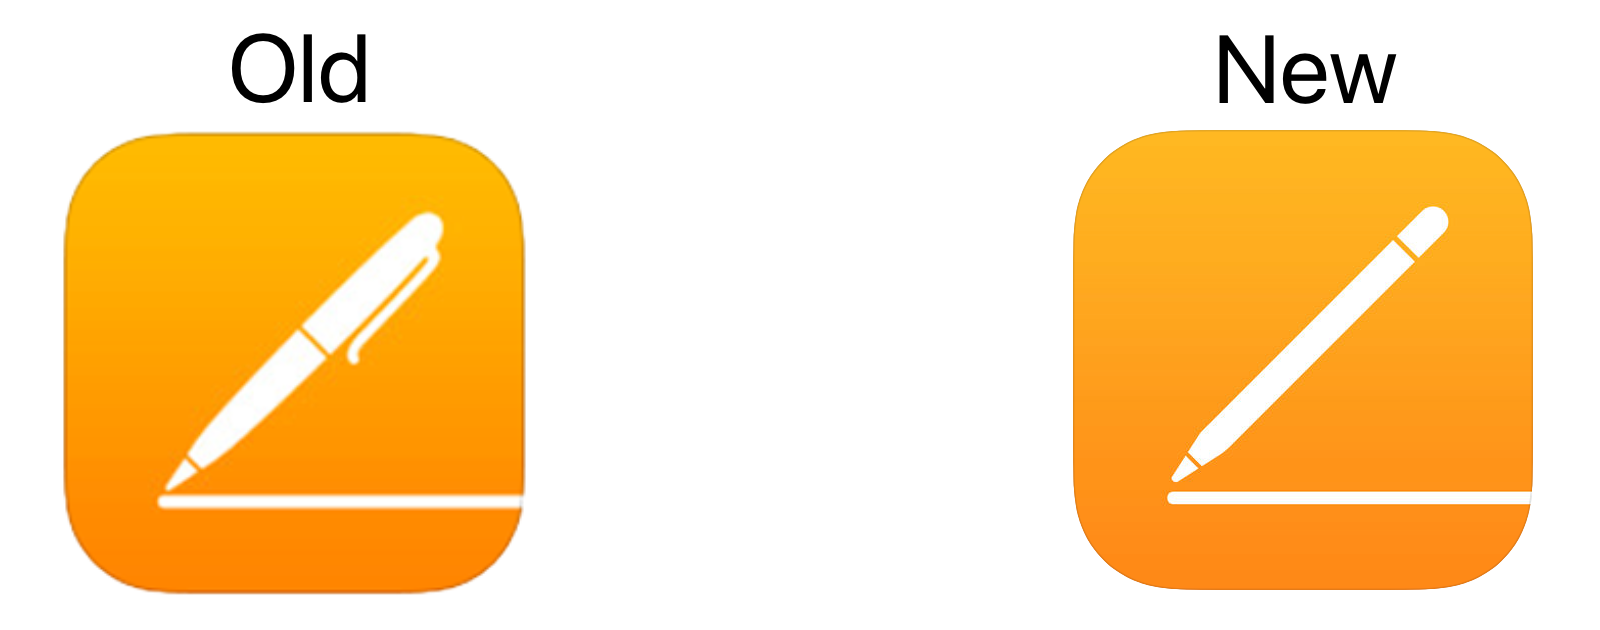 iOS Pages app icon: Old versus New.